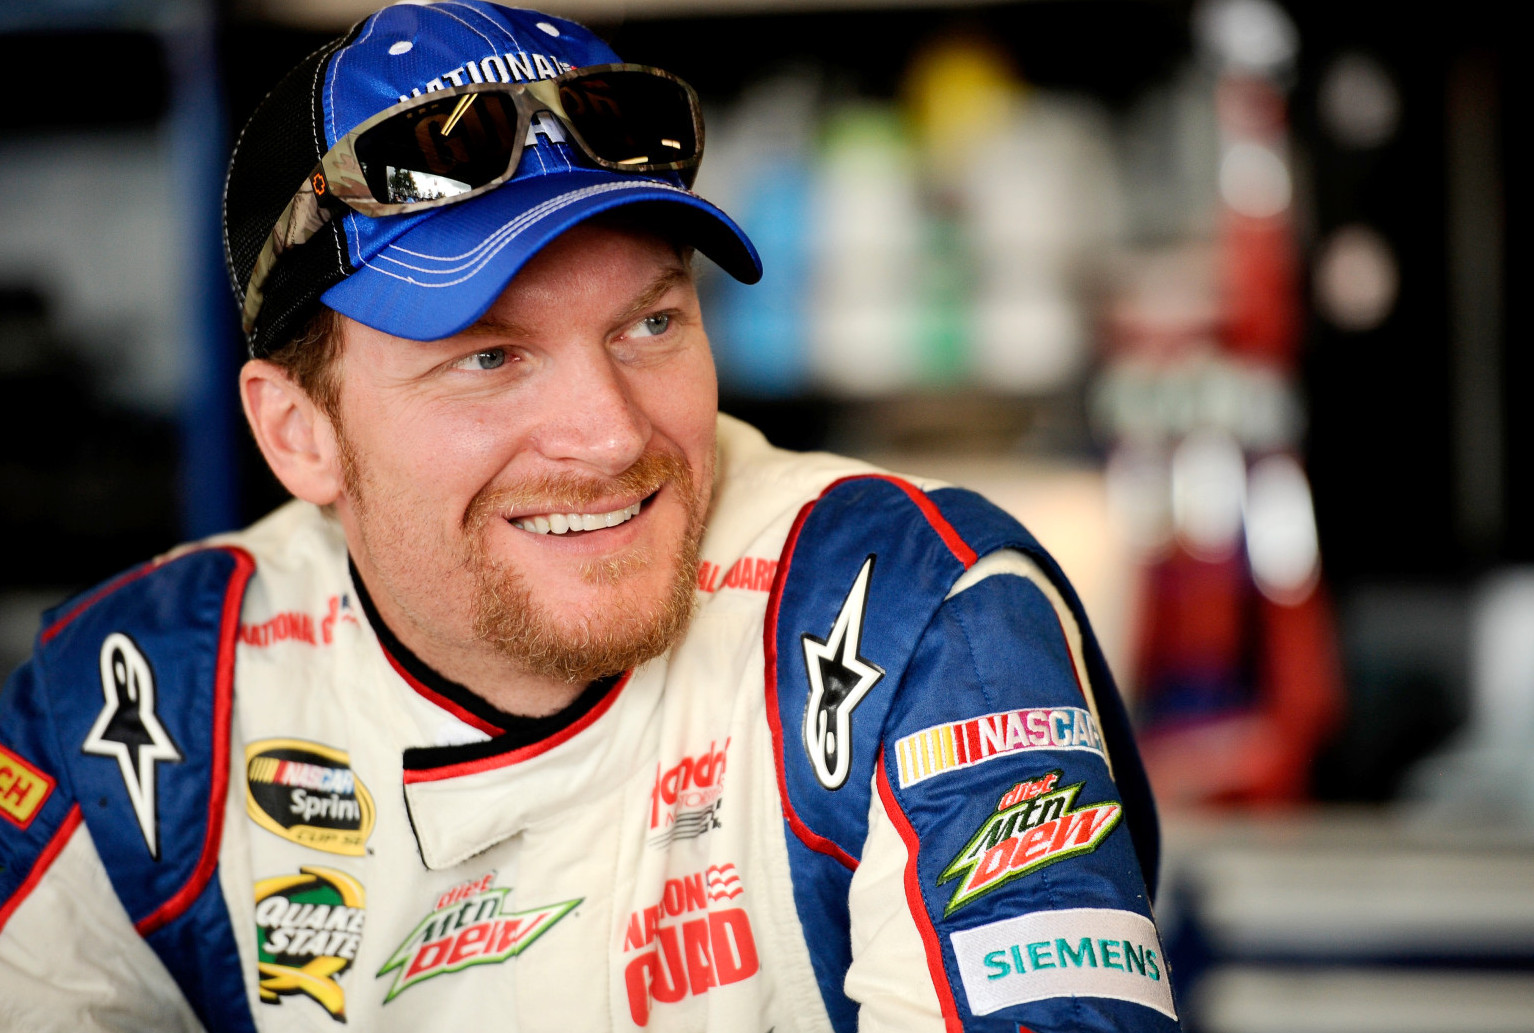 Dale Earnhardt Jr Racing Driver